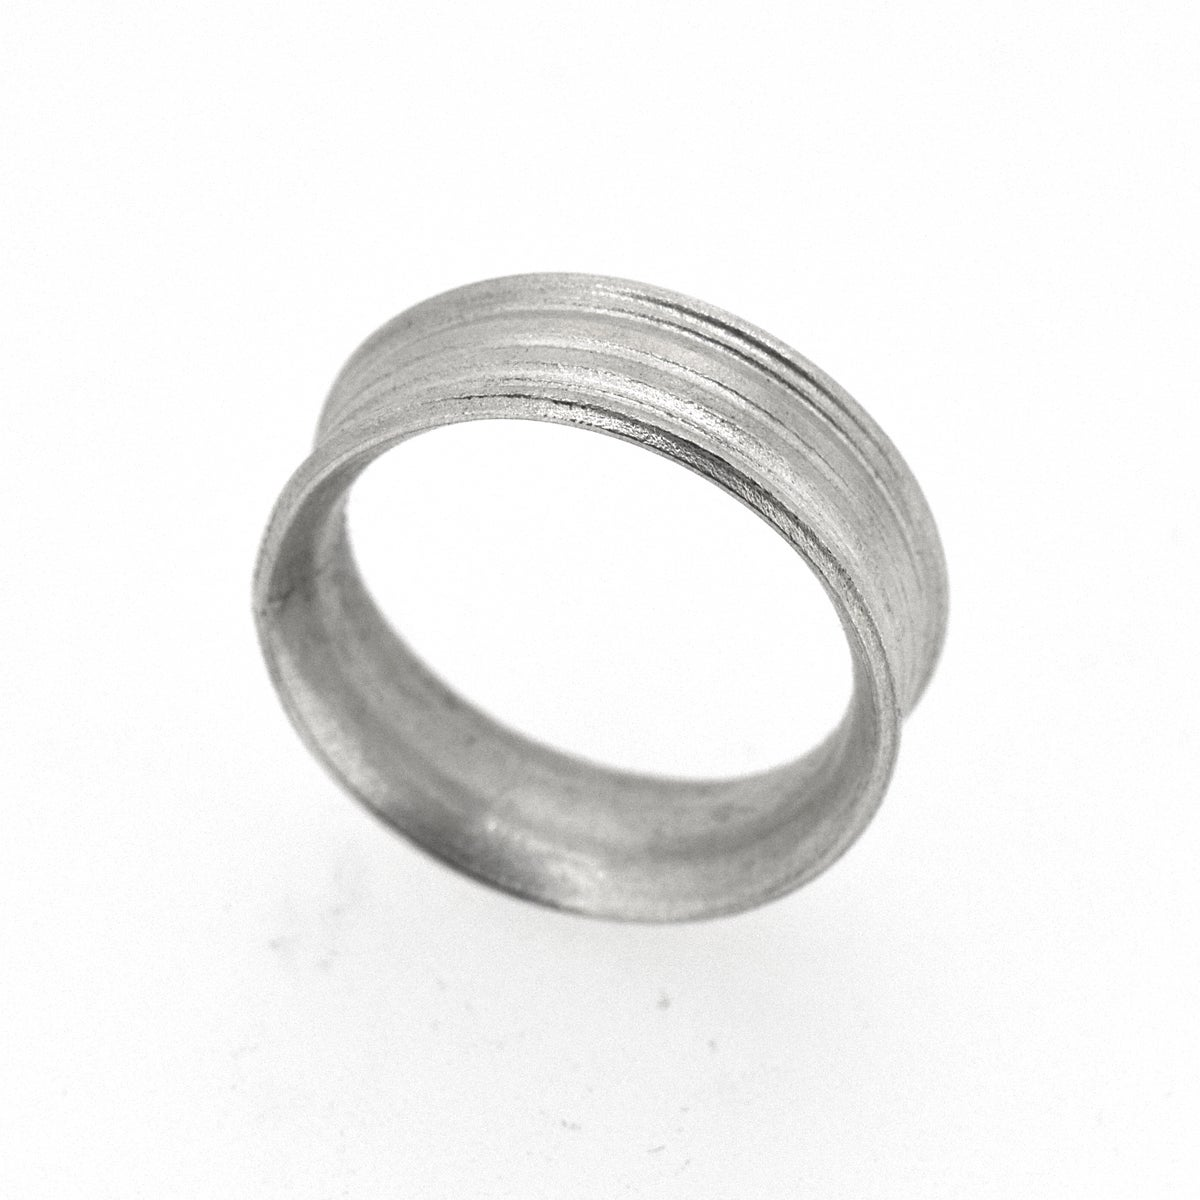 Sterling Silver Round, grooved 'Strata' Ring. 7mm diameter band with a rounded, easy fit inside